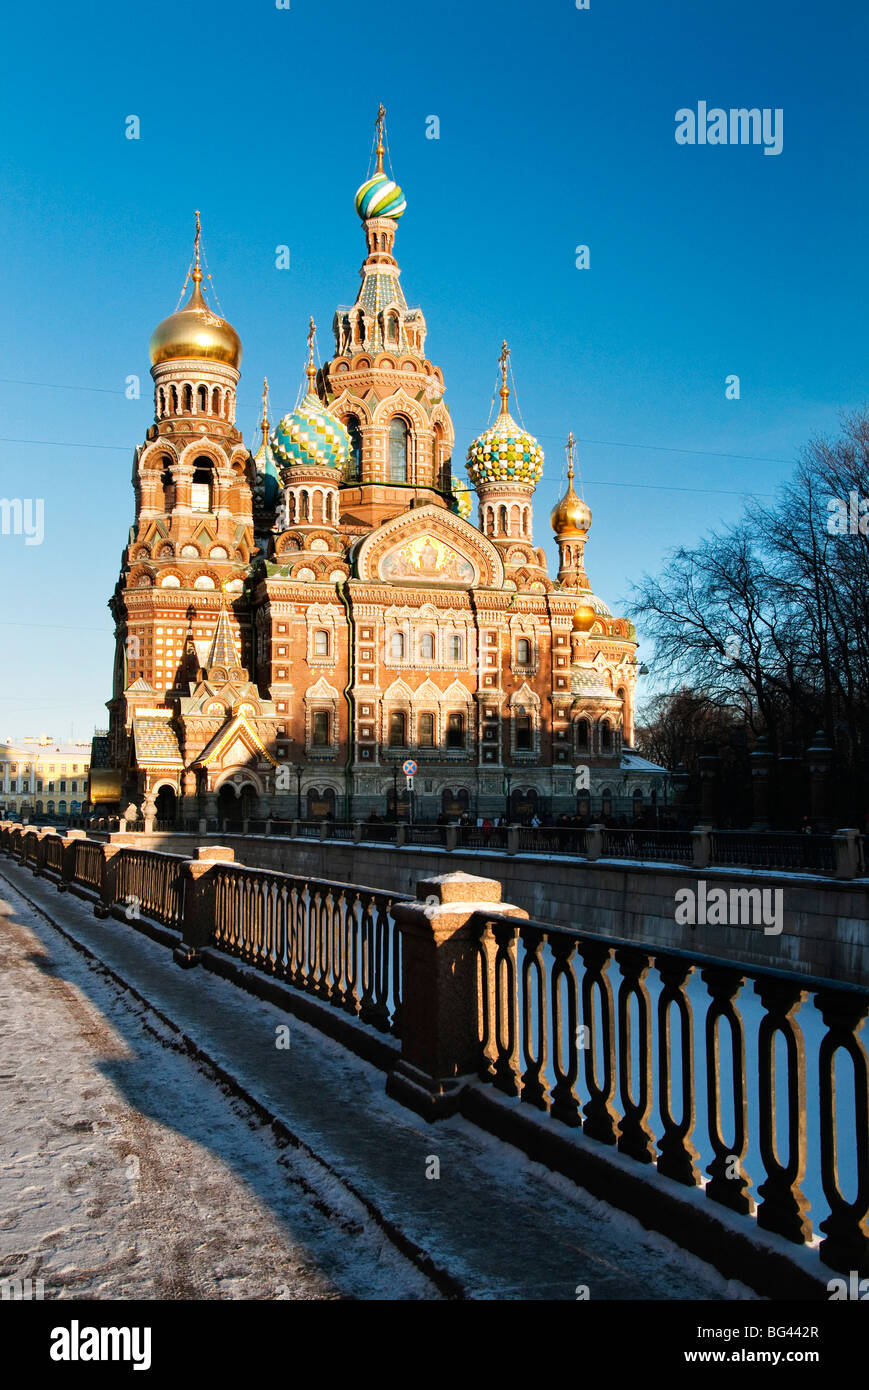 The Church of our Saviour on the spilled blood, Saint Petersburg, Russia - Stock Image